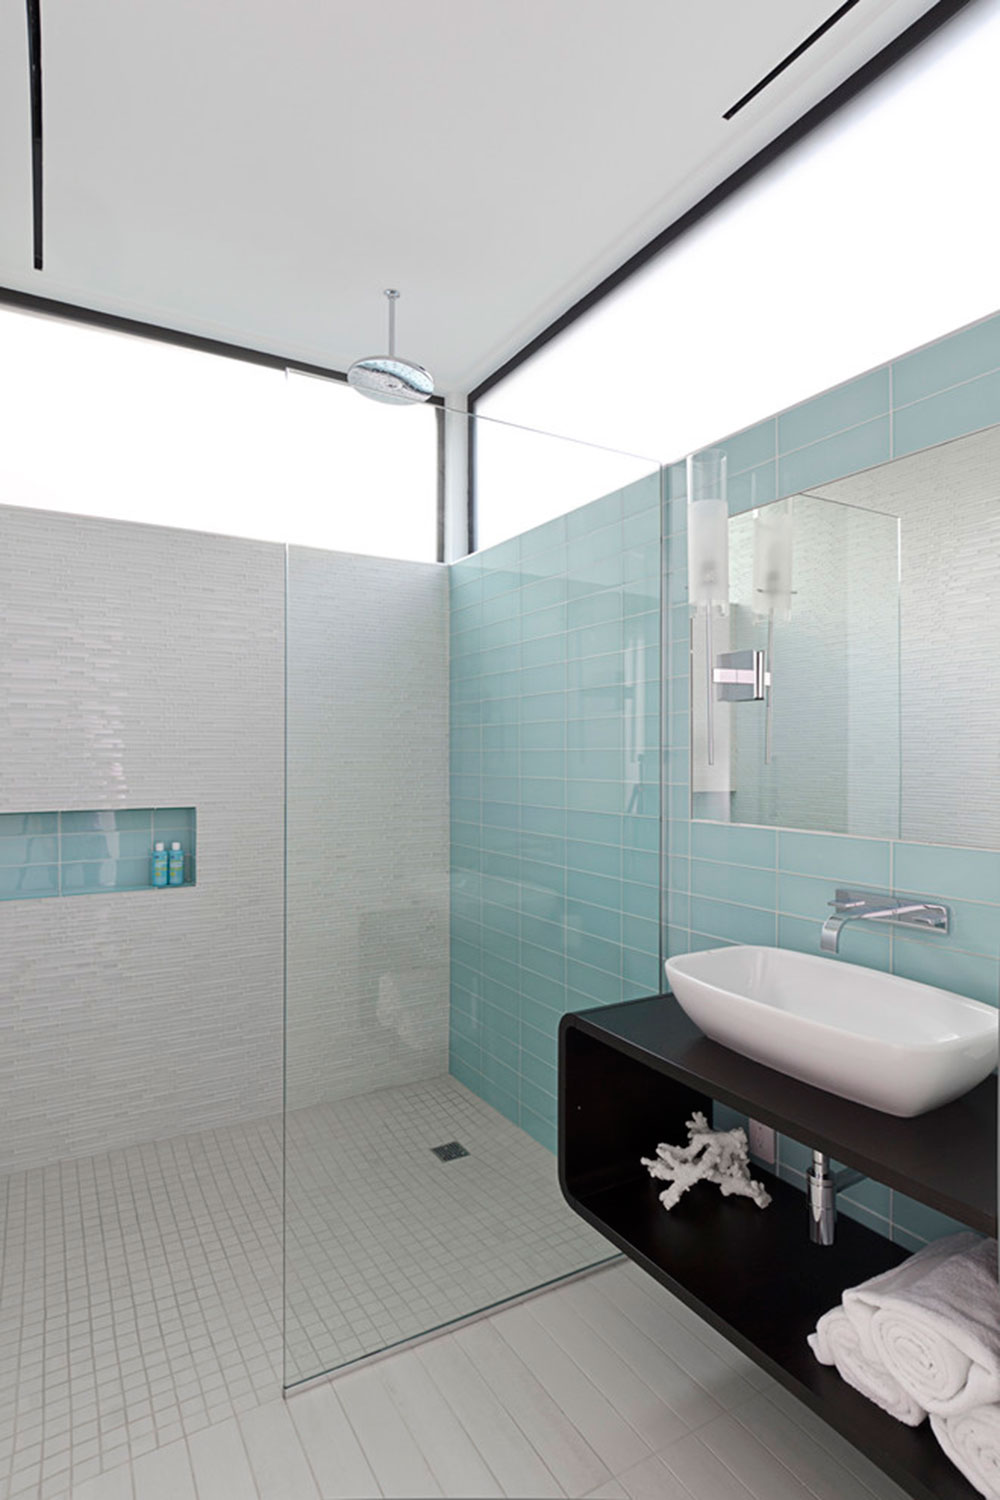 Choosing Bathroom Tile Photos And Examples Of How To Choose The Best Bathroom Tiles